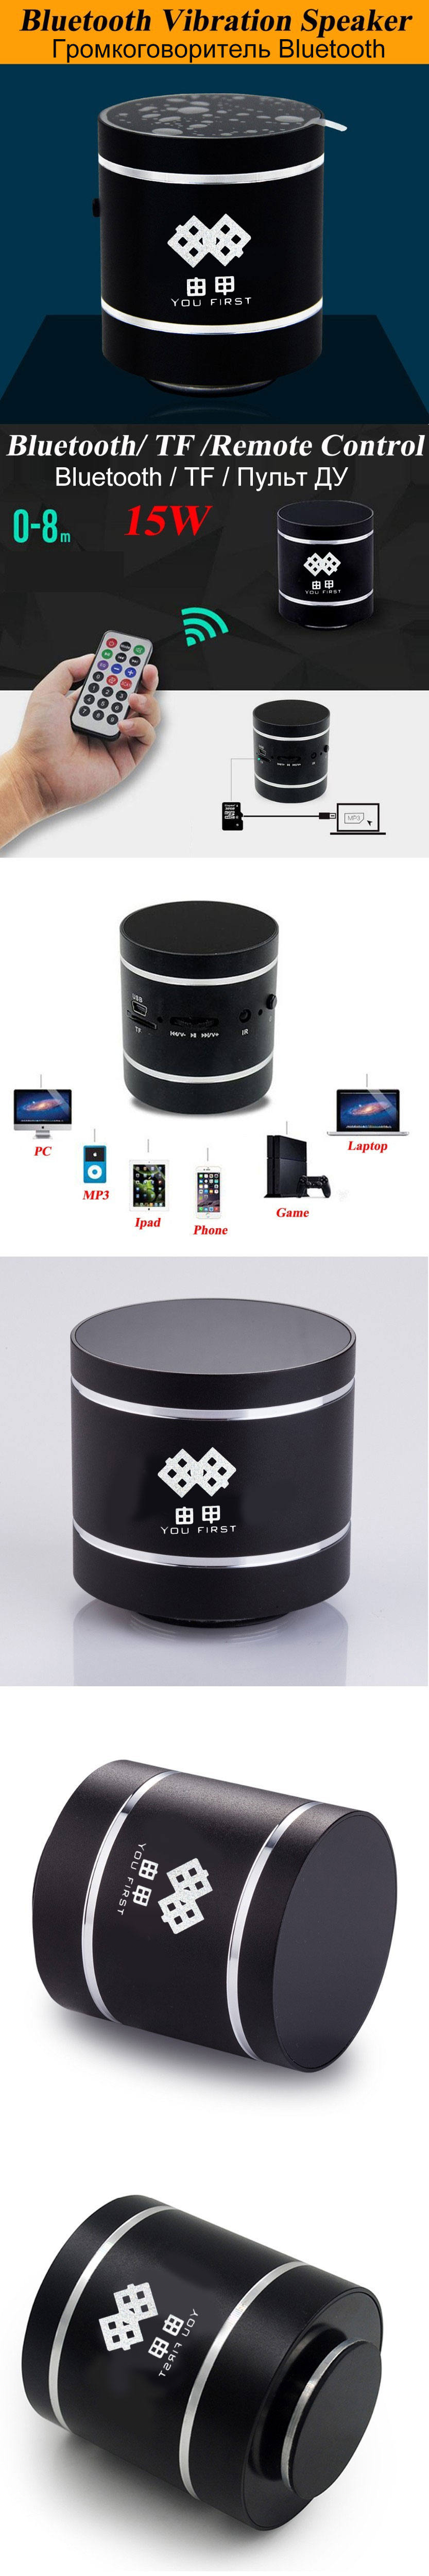 YOU FIRST 15W Mini Speaker Dwarf Omni Directiona Audio Rechargeable FM TF USB Vibration Speaker With Remote Control for Phone PC